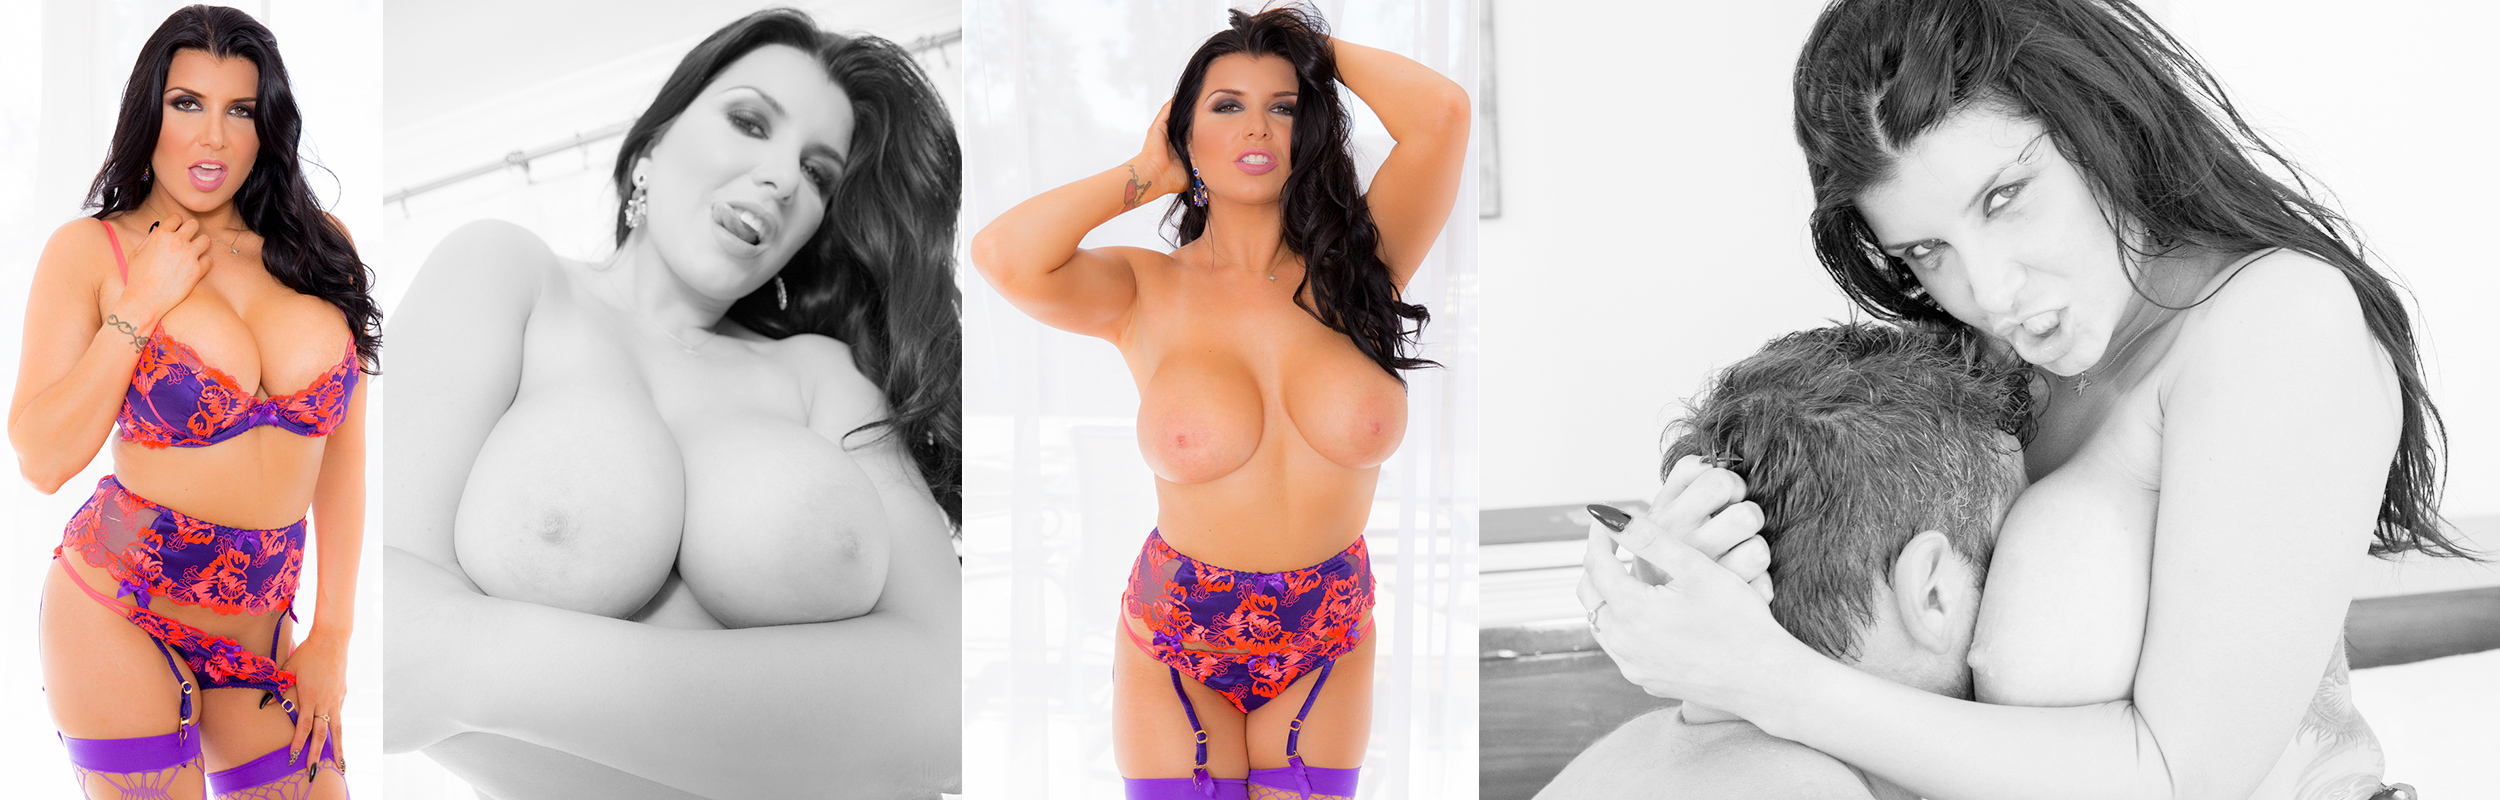 Romi Rain's Magnificent Tits Can't Stop Manuel From Entering Her Back Door